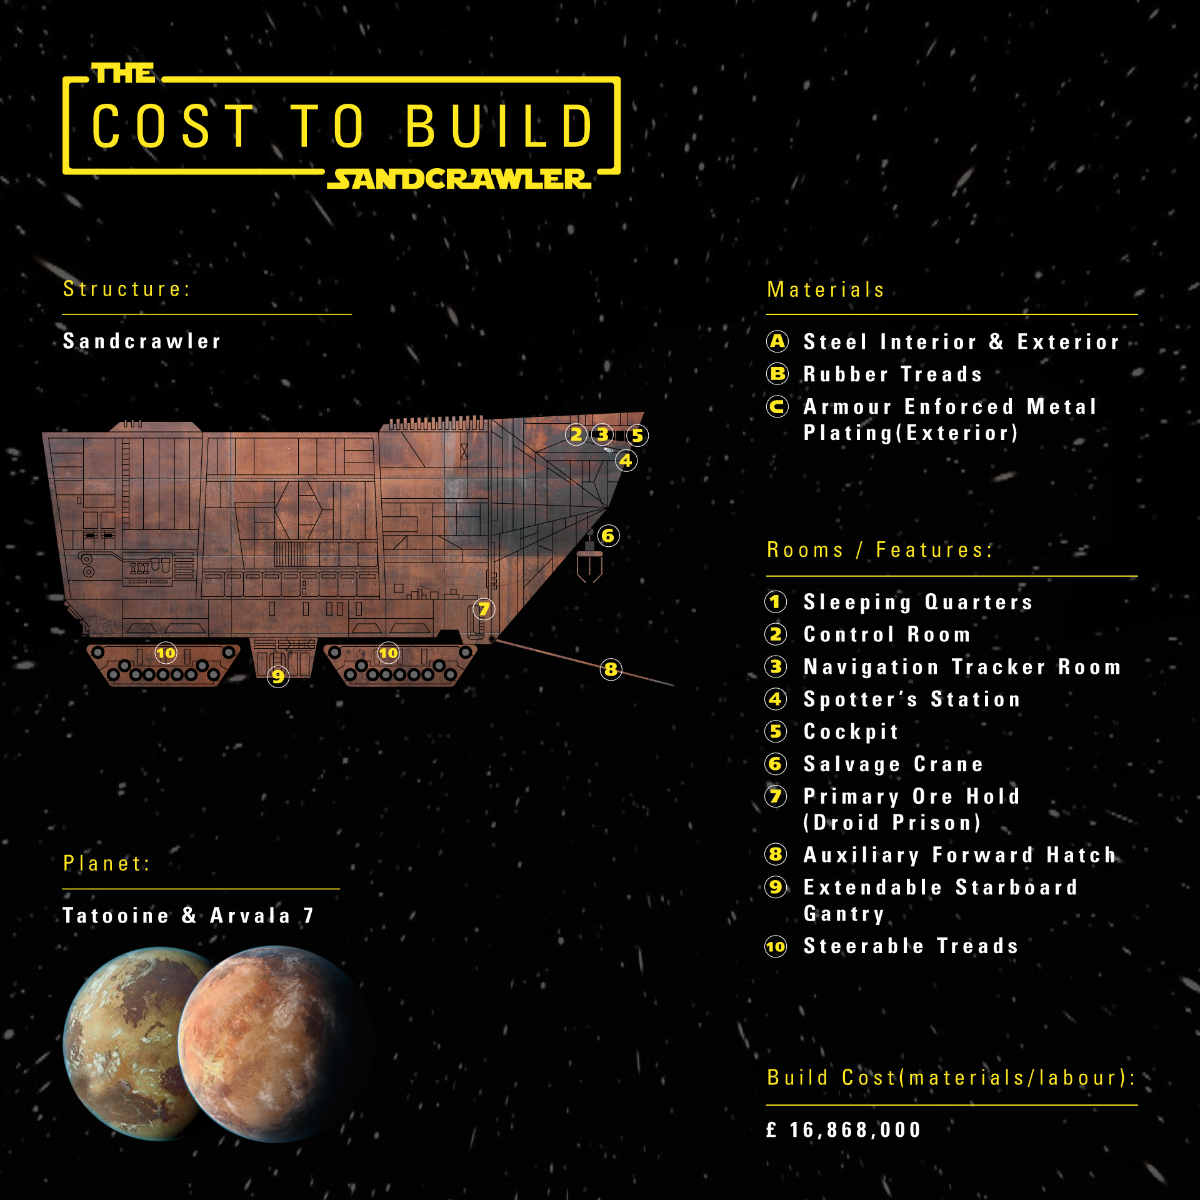 Cost to build